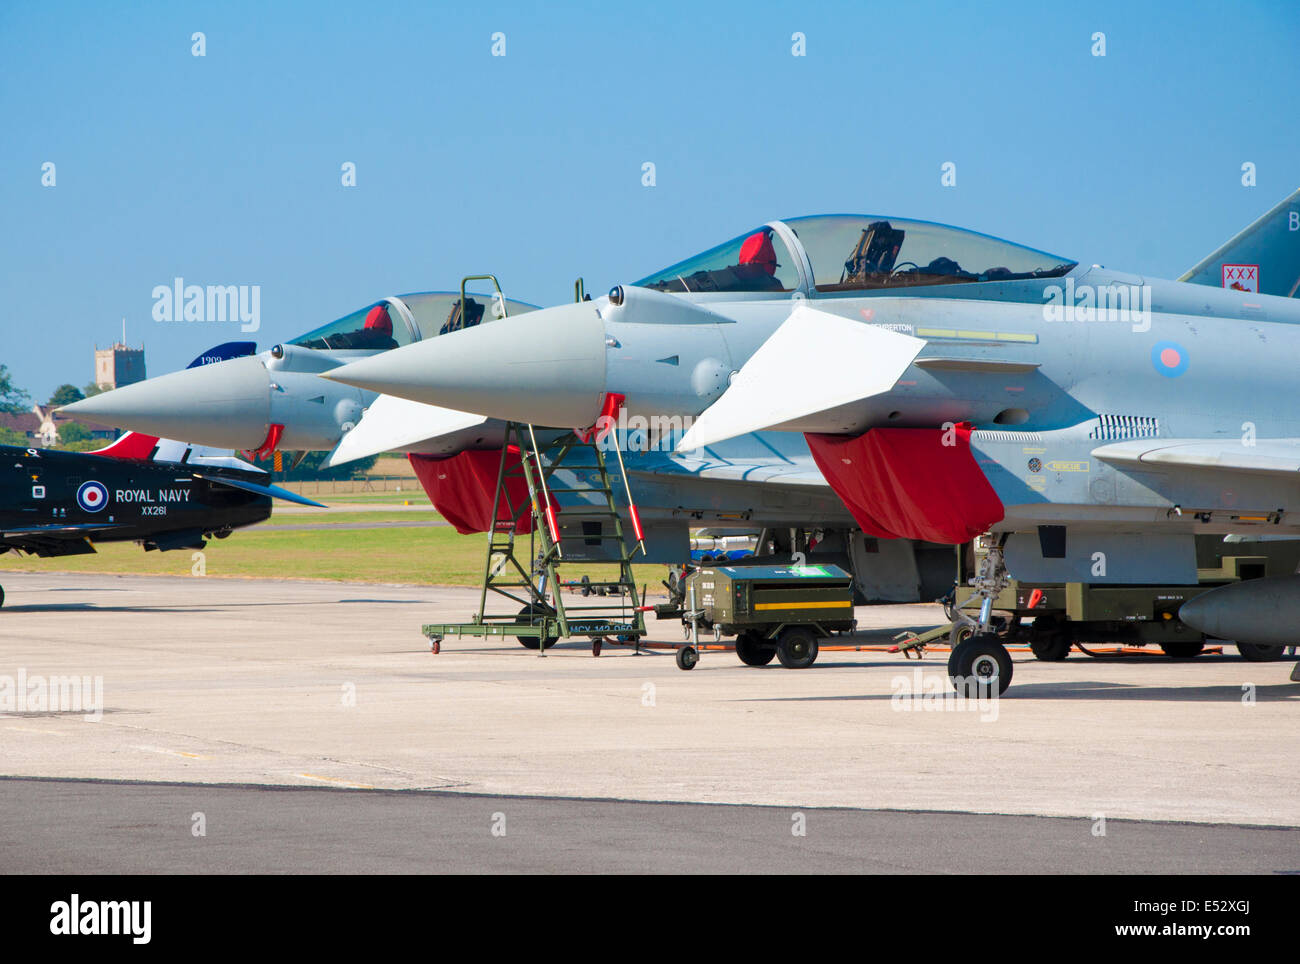 The noses of two Eurofighter Typhoon FGR4 aircraft (parked) with canards angled down and intake covers in place - Stock Image